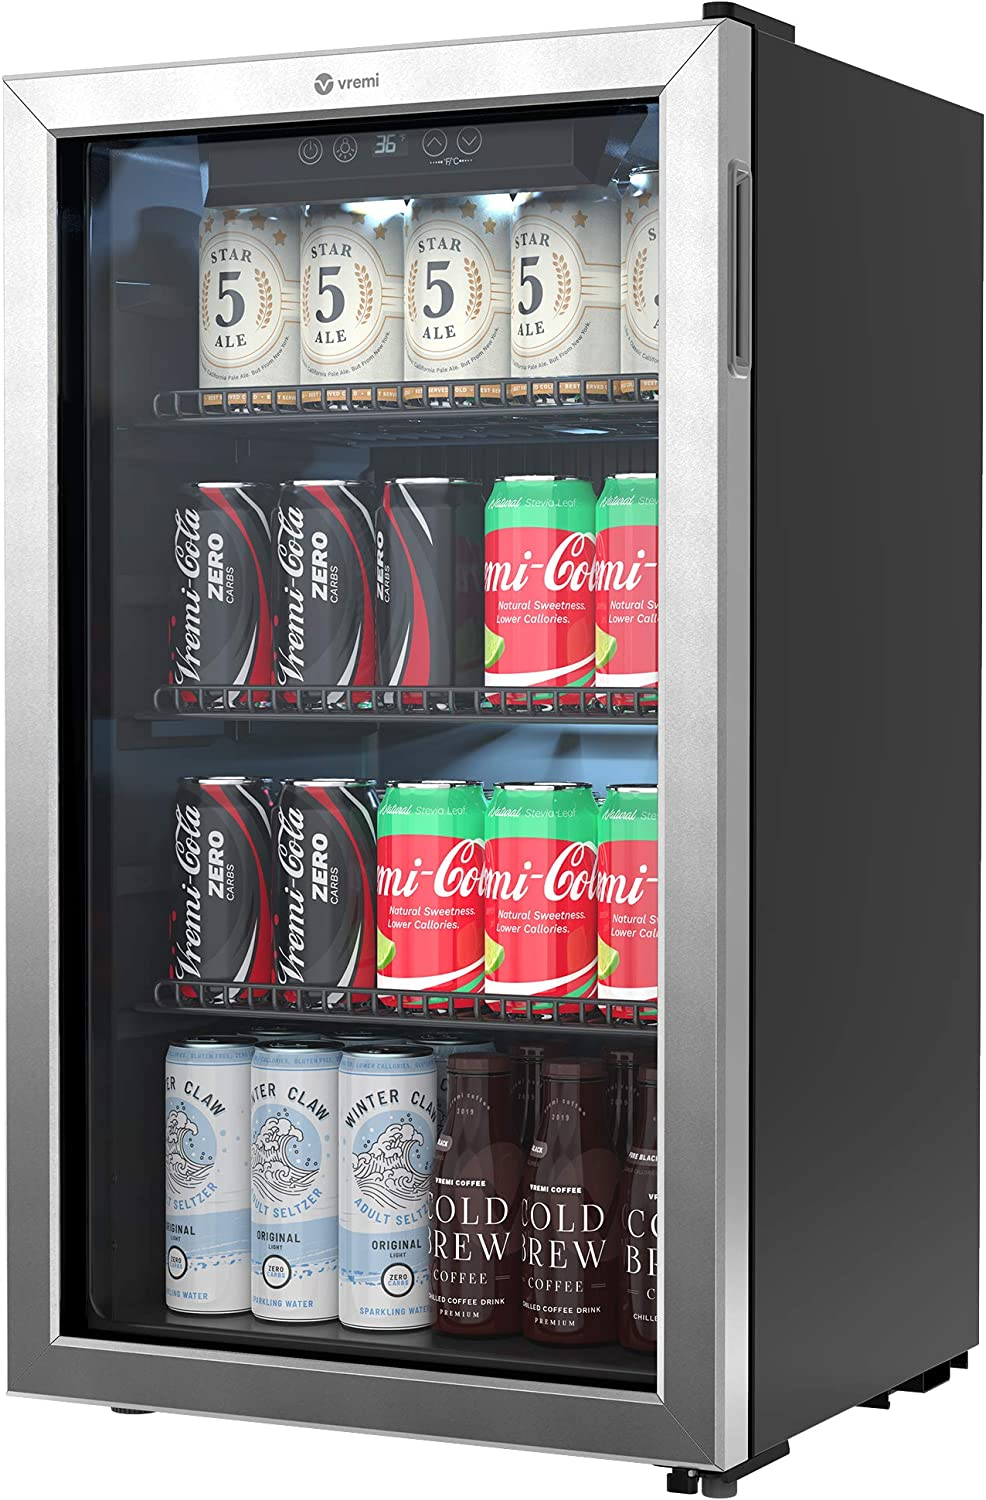 Vremi 120 Can Beverage Refrigerator - 3.2 Cubic Foot Capacity, Double Pane Glass Door, Stainless Steel Frame, LED Lighting and Digital Thermostat - Designed for Homes, Bars and Offices